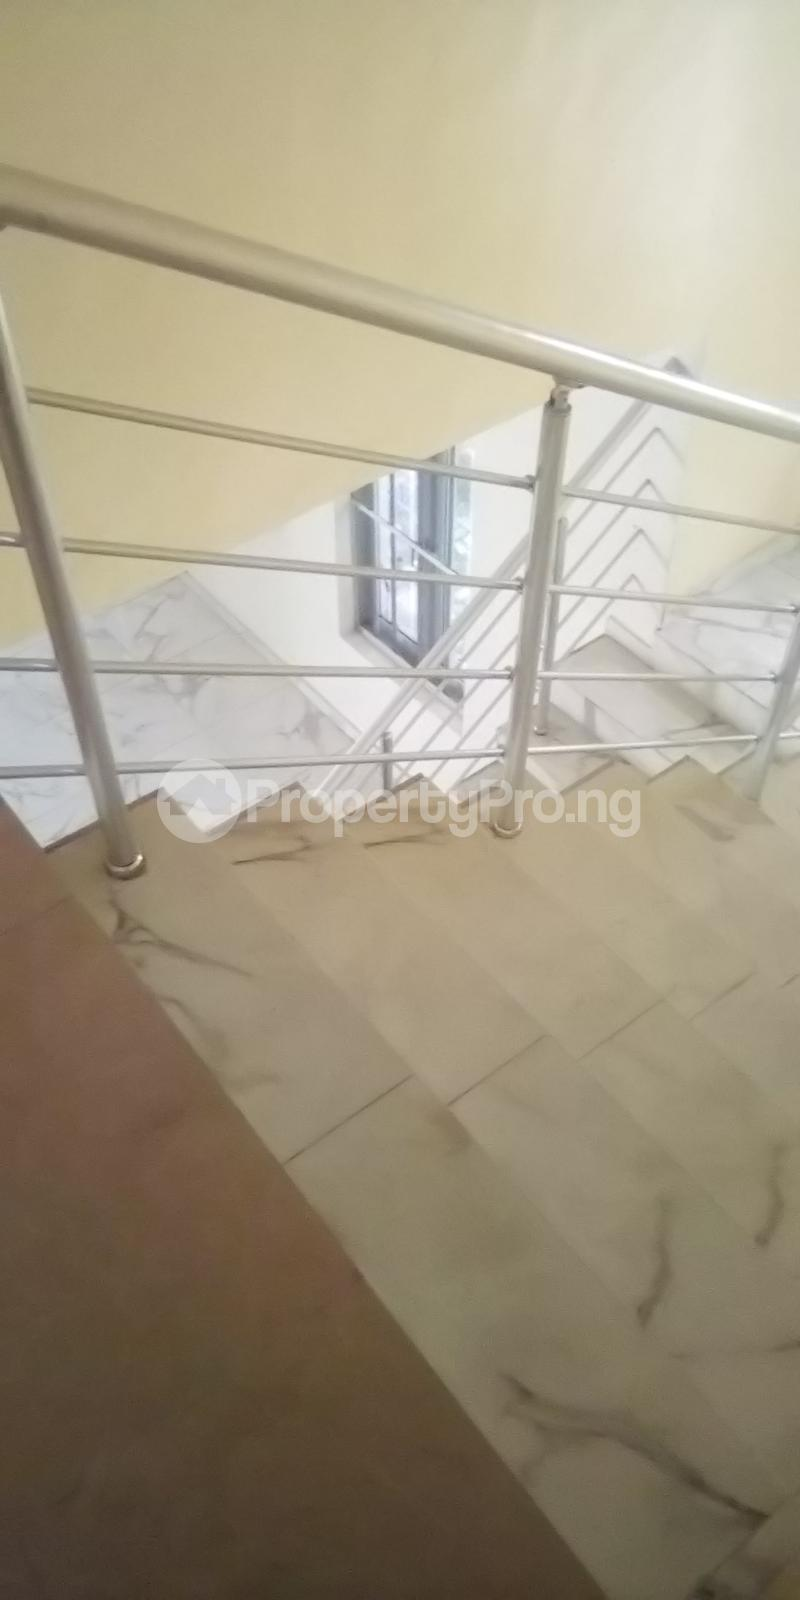 5 bedroom Detached Duplex House for rent 5 bedroom detached house on amjor commercial axis of Chevy View estate by Chevron,lekki. chevron Lekki Lagos - 1